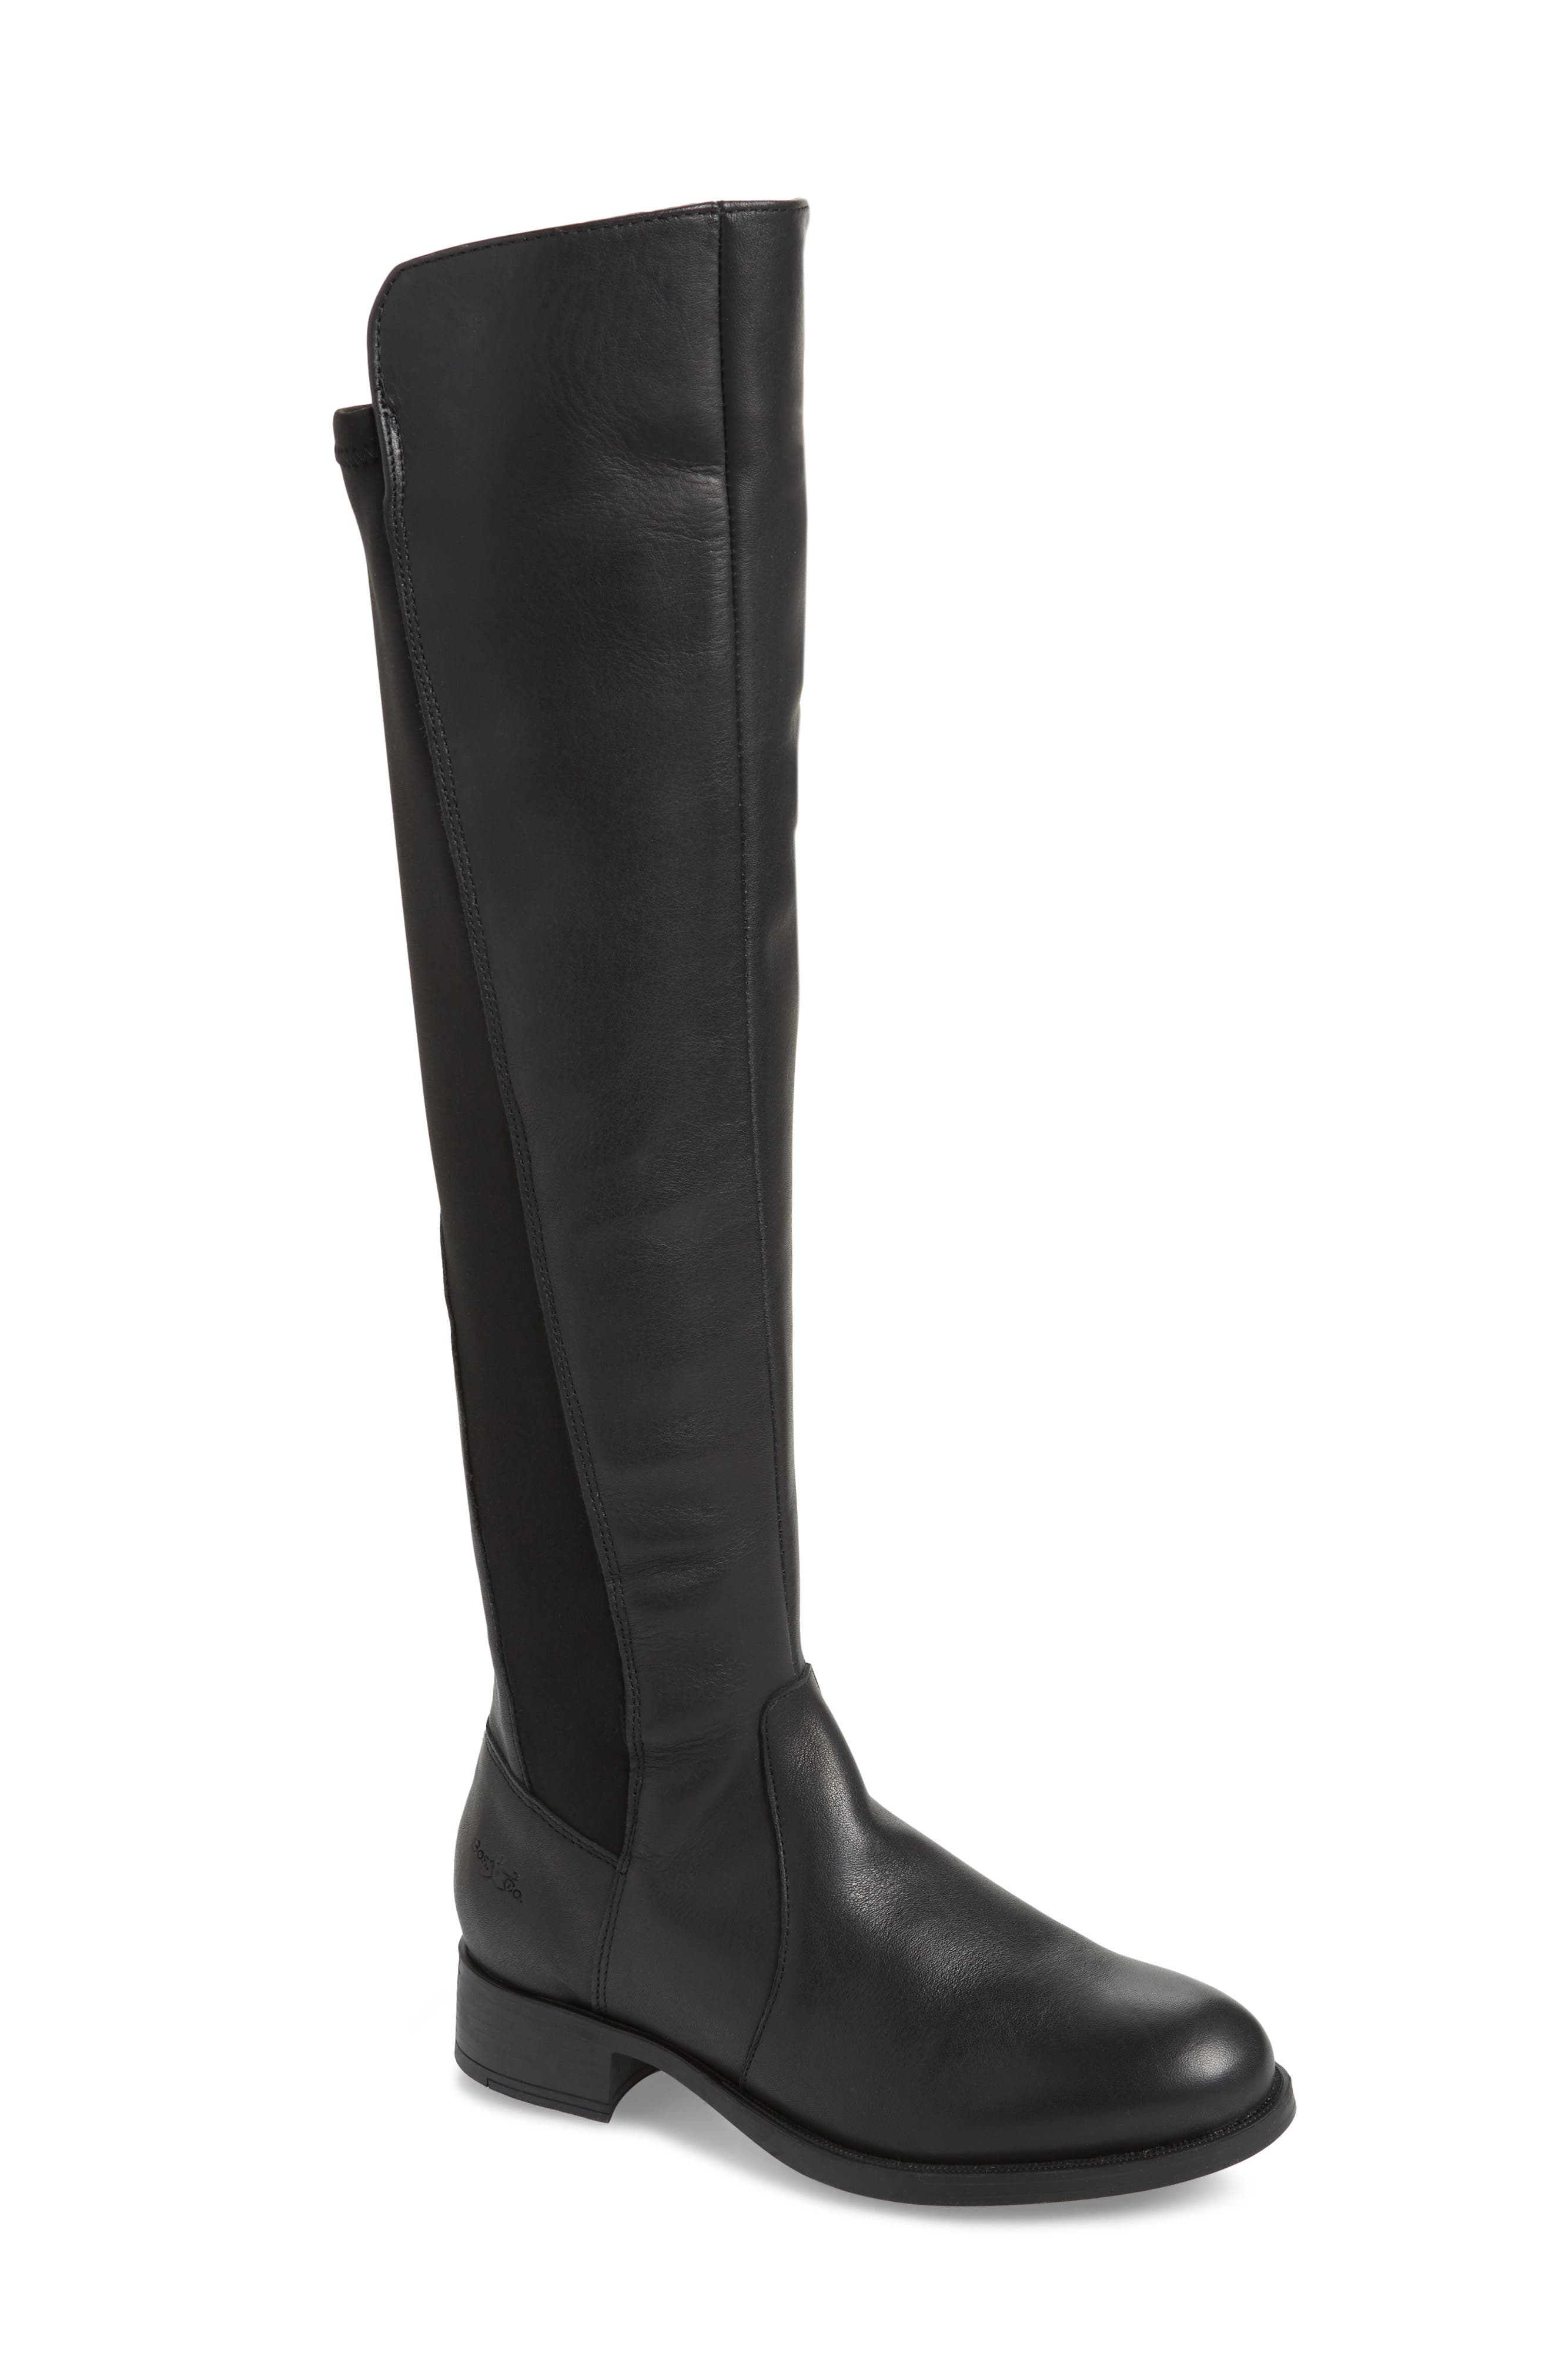 BOS. & CO.,                             Bunt Waterproof Over the Knee Boot,                             Main thumbnail 1, color,                             BLACK MELBOURNE/ LYCRA